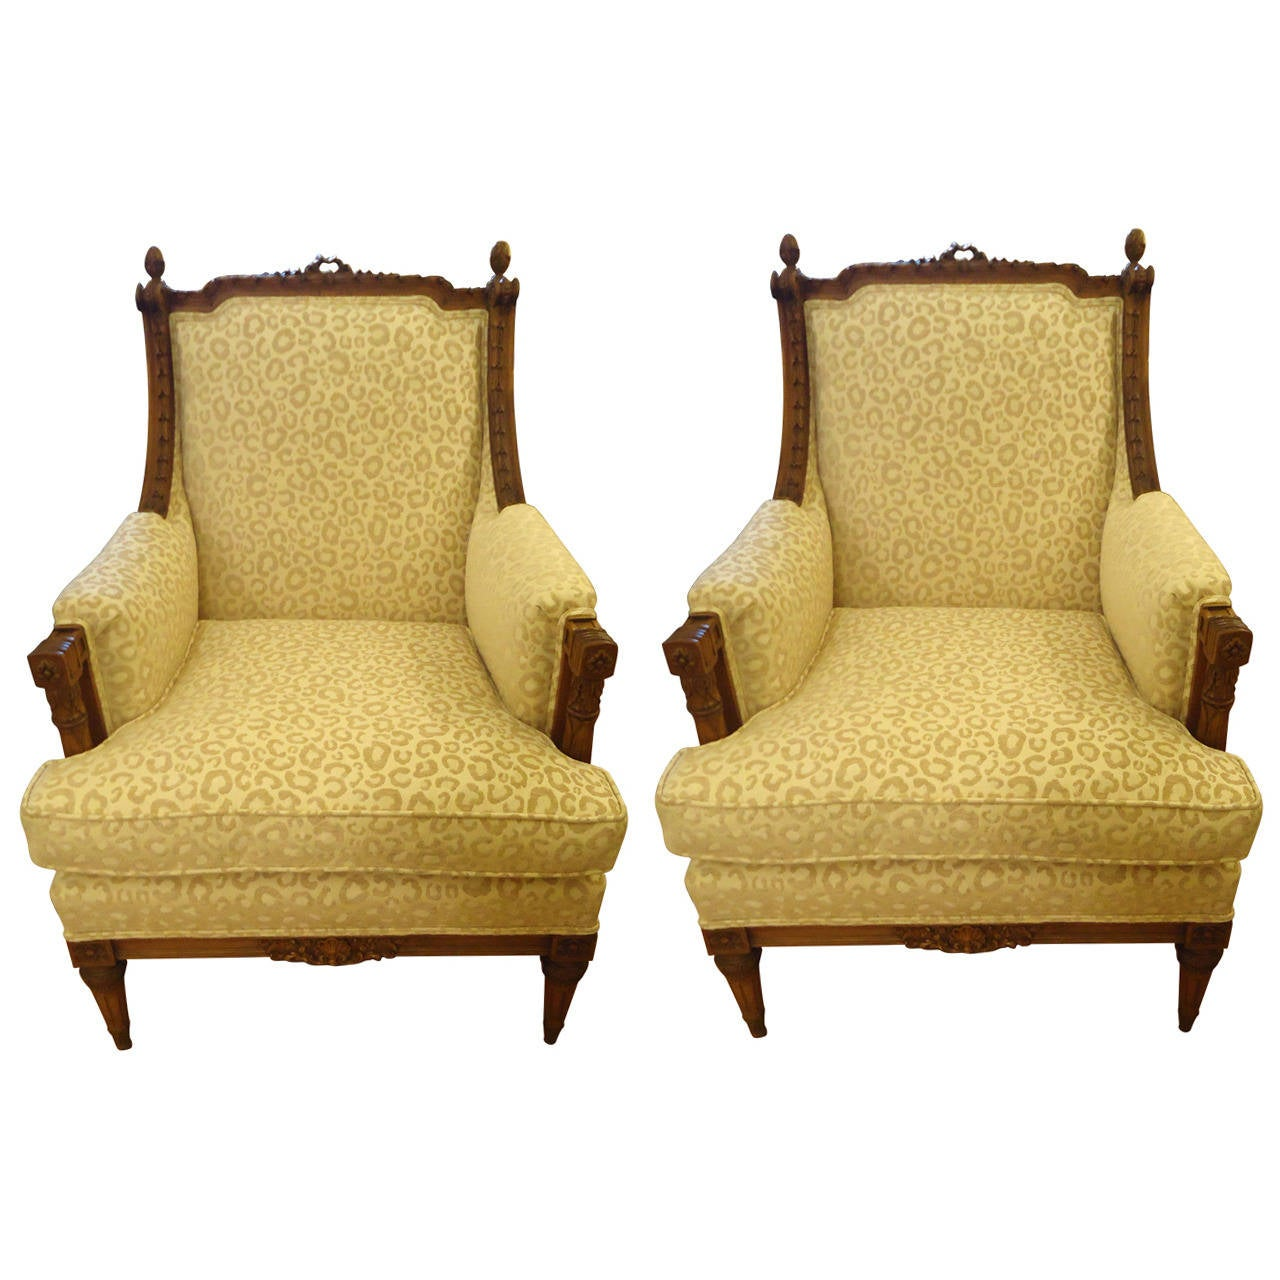 Pair Of Big Comfy French Walnut Bergere Chairs With Animal